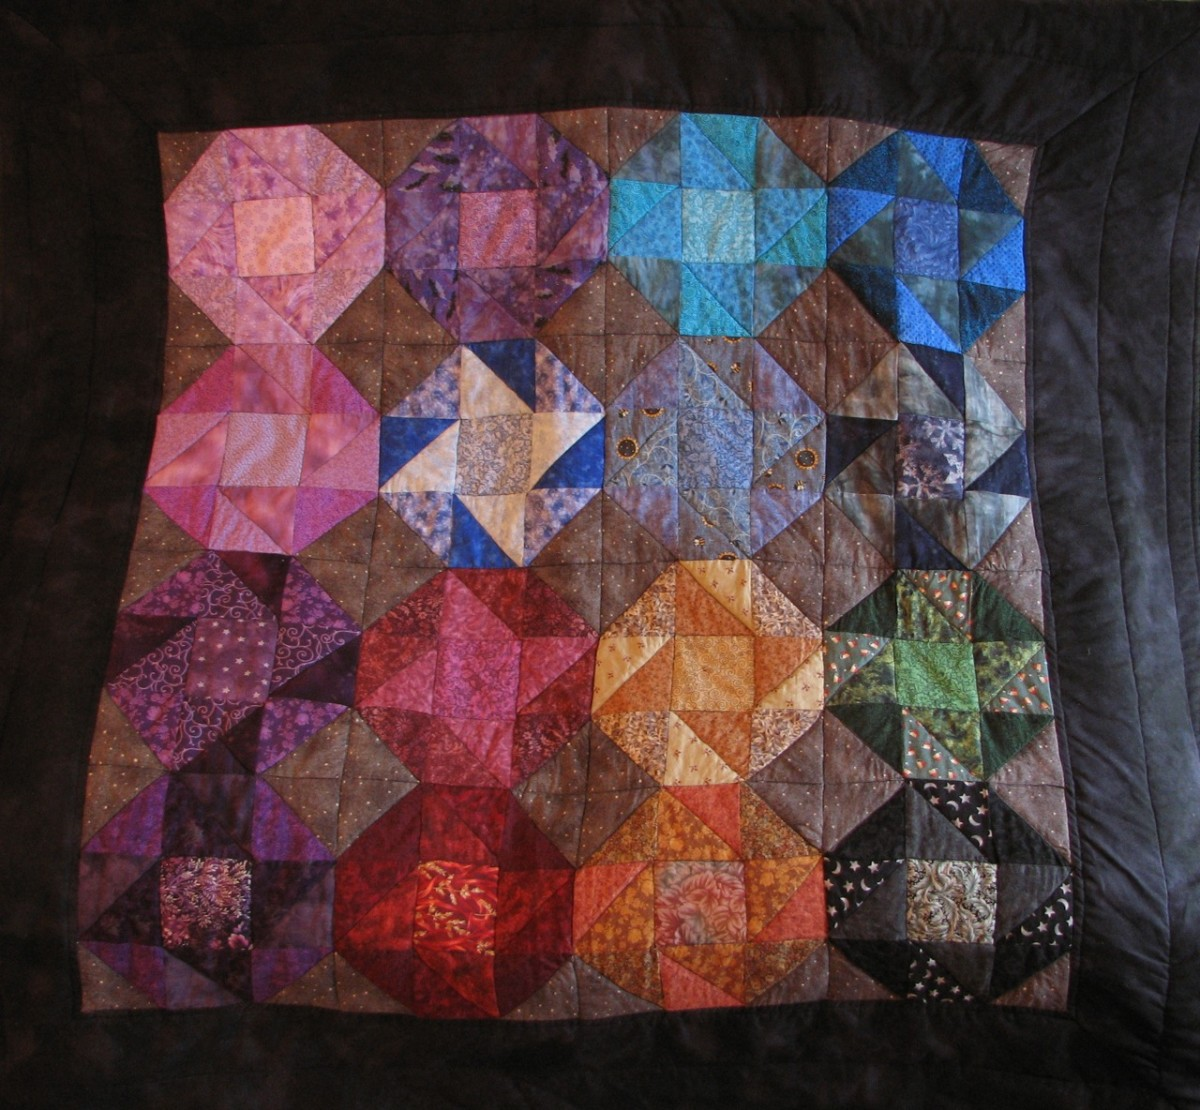 My finished quilt - can you spot my mistake?